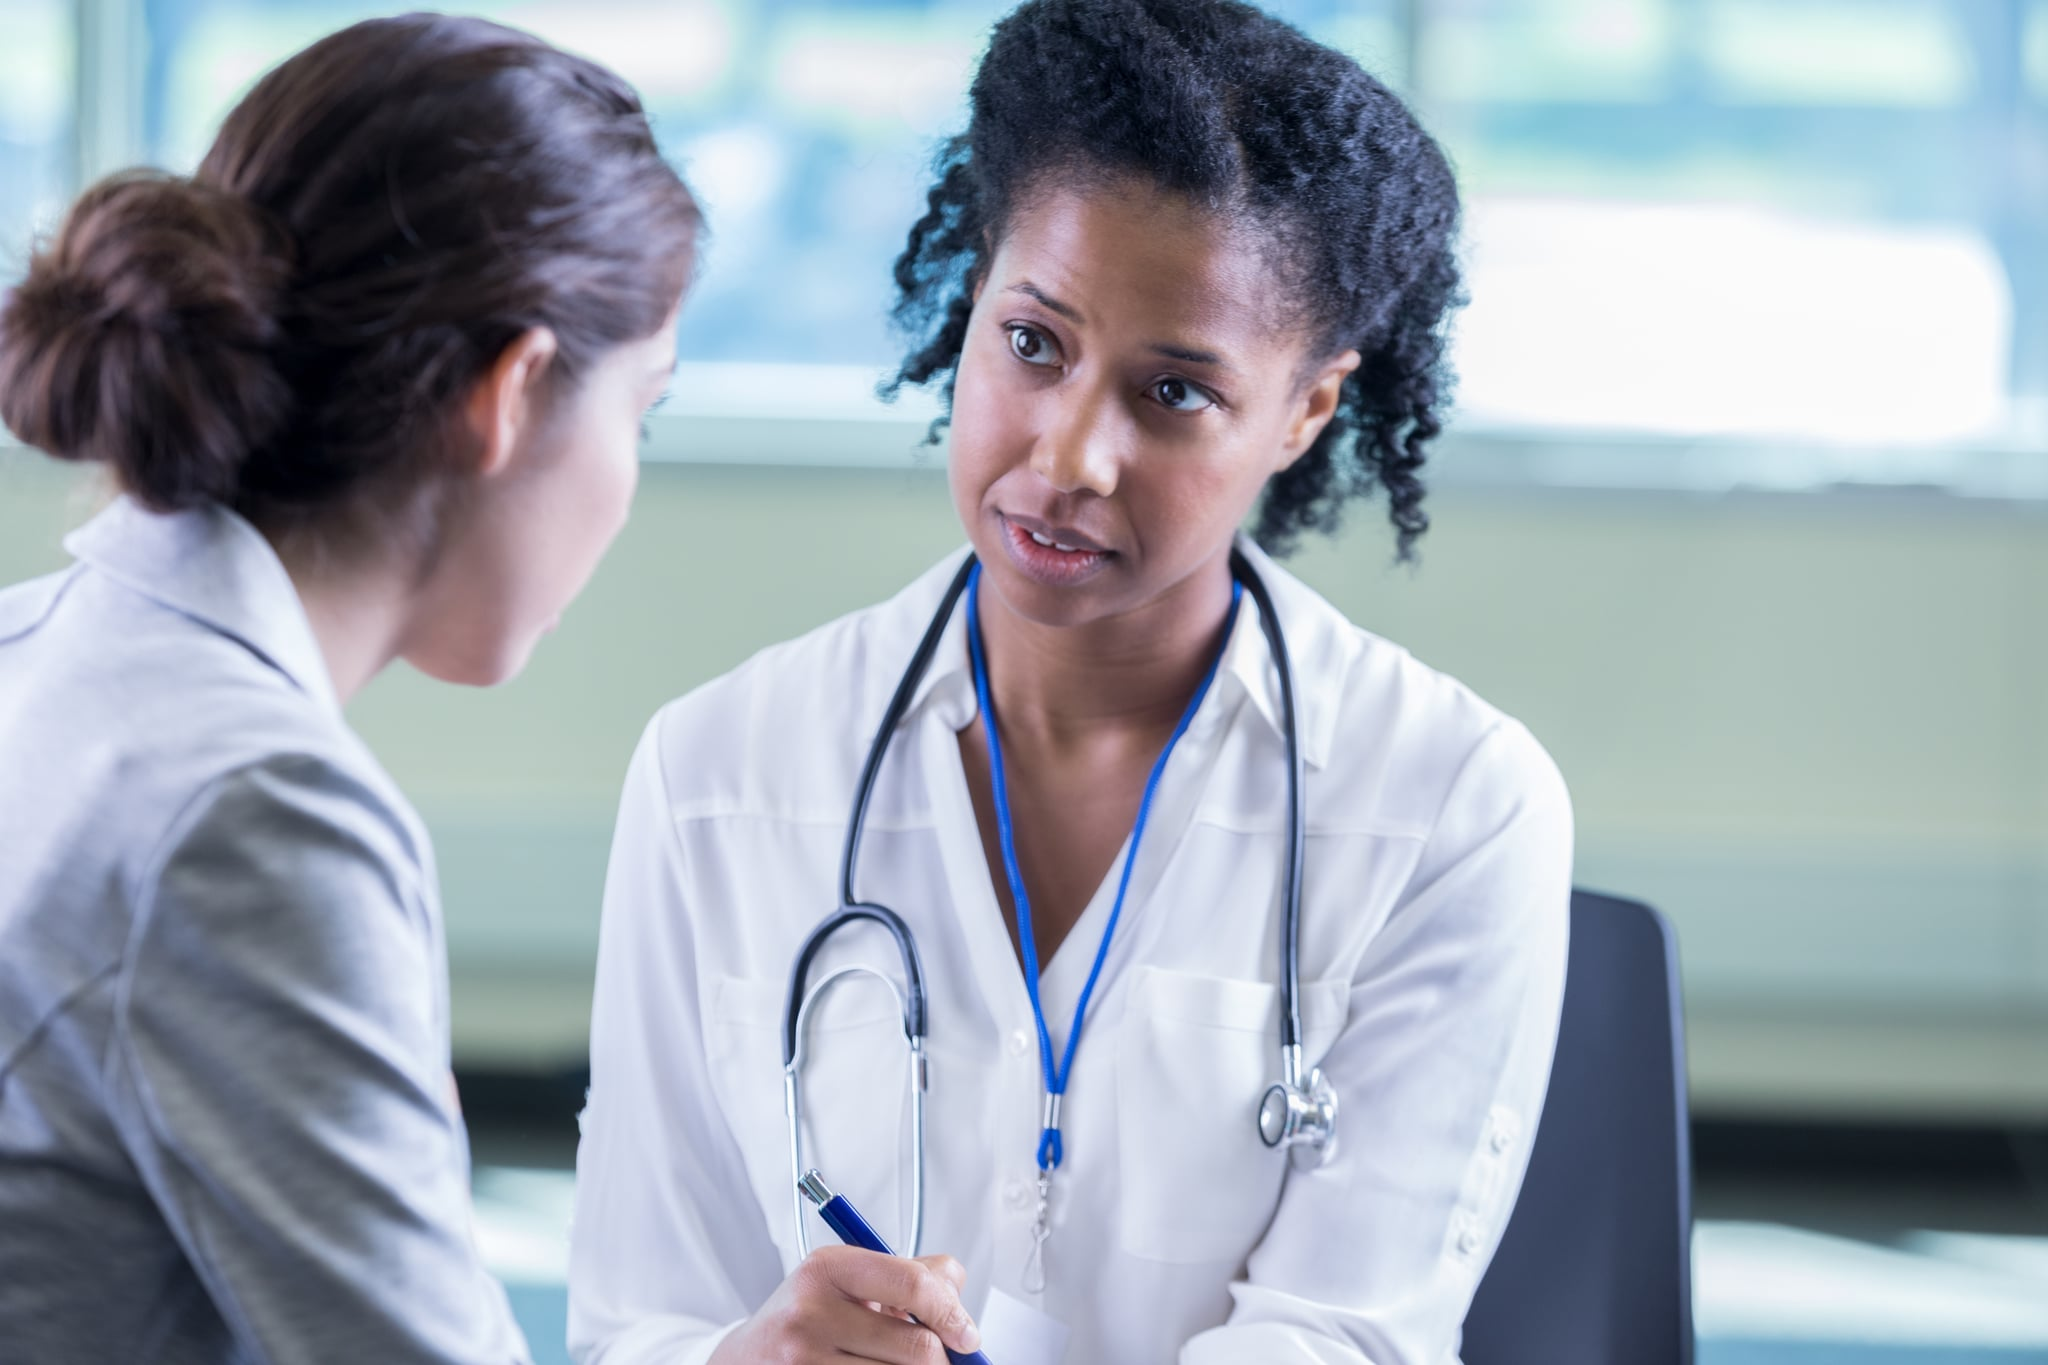 A compassionate female doctor with female patient